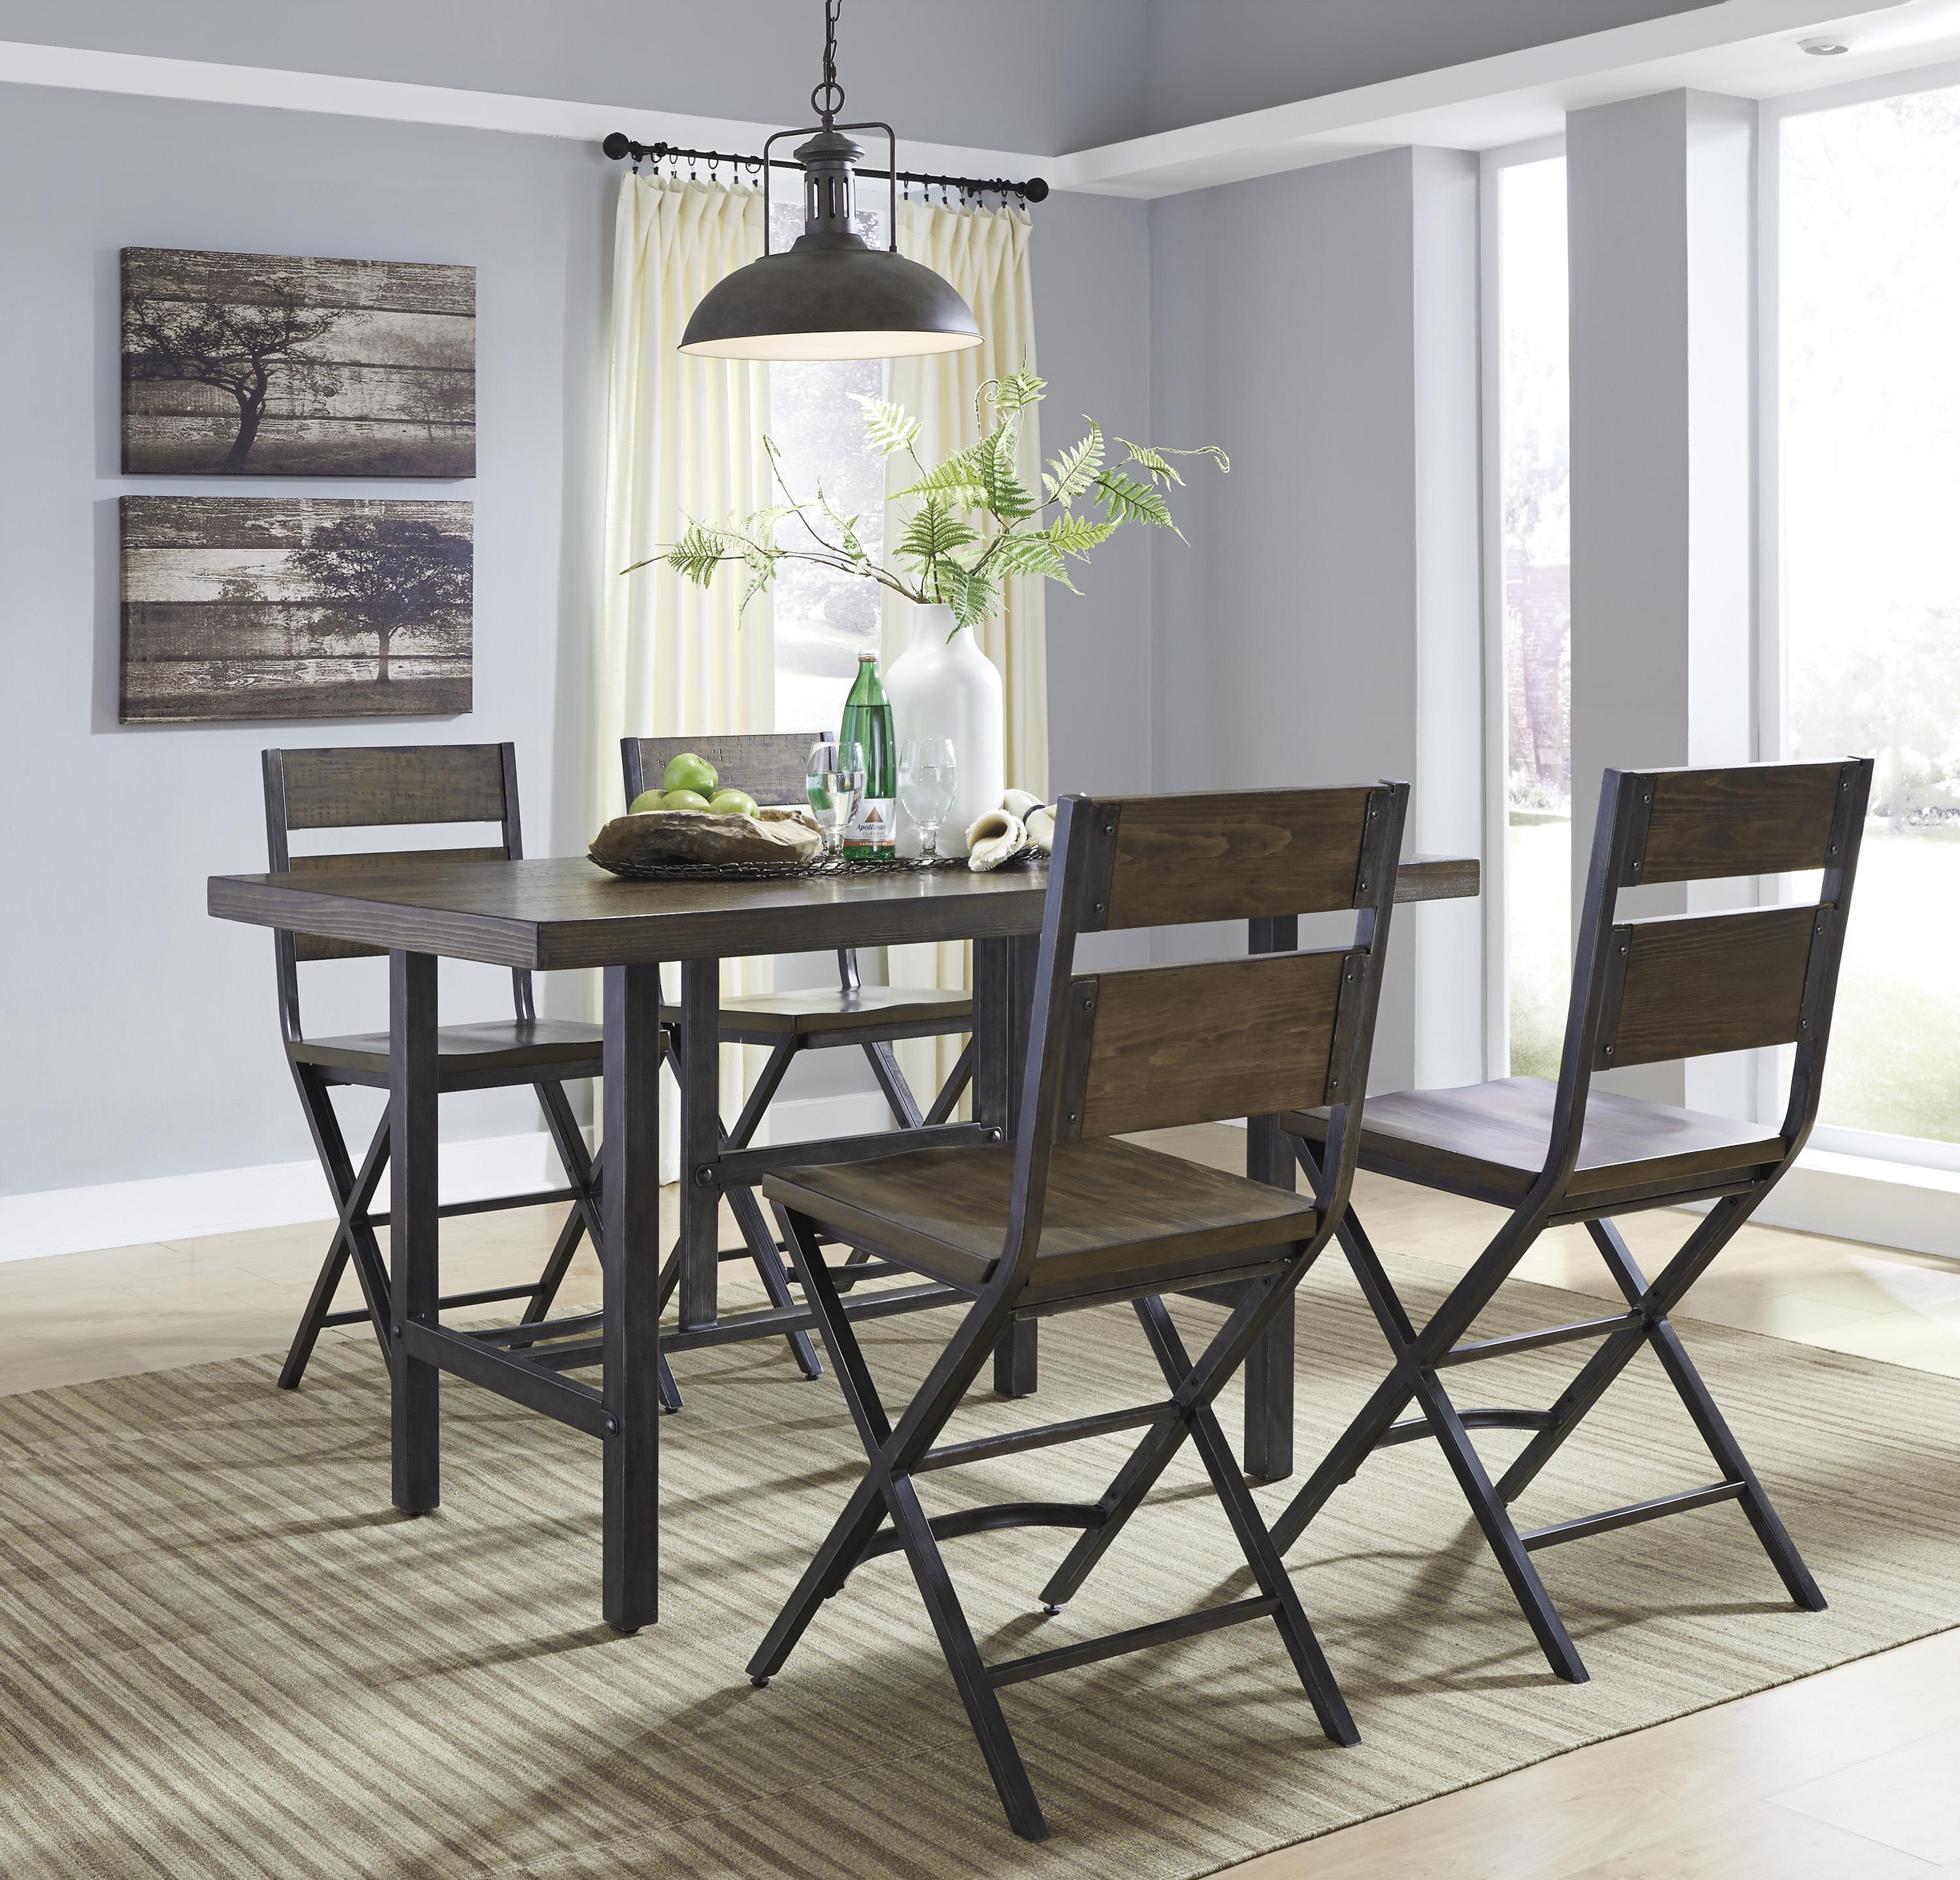 5 Piece Rectangular Dining Room Counter Table W Pine